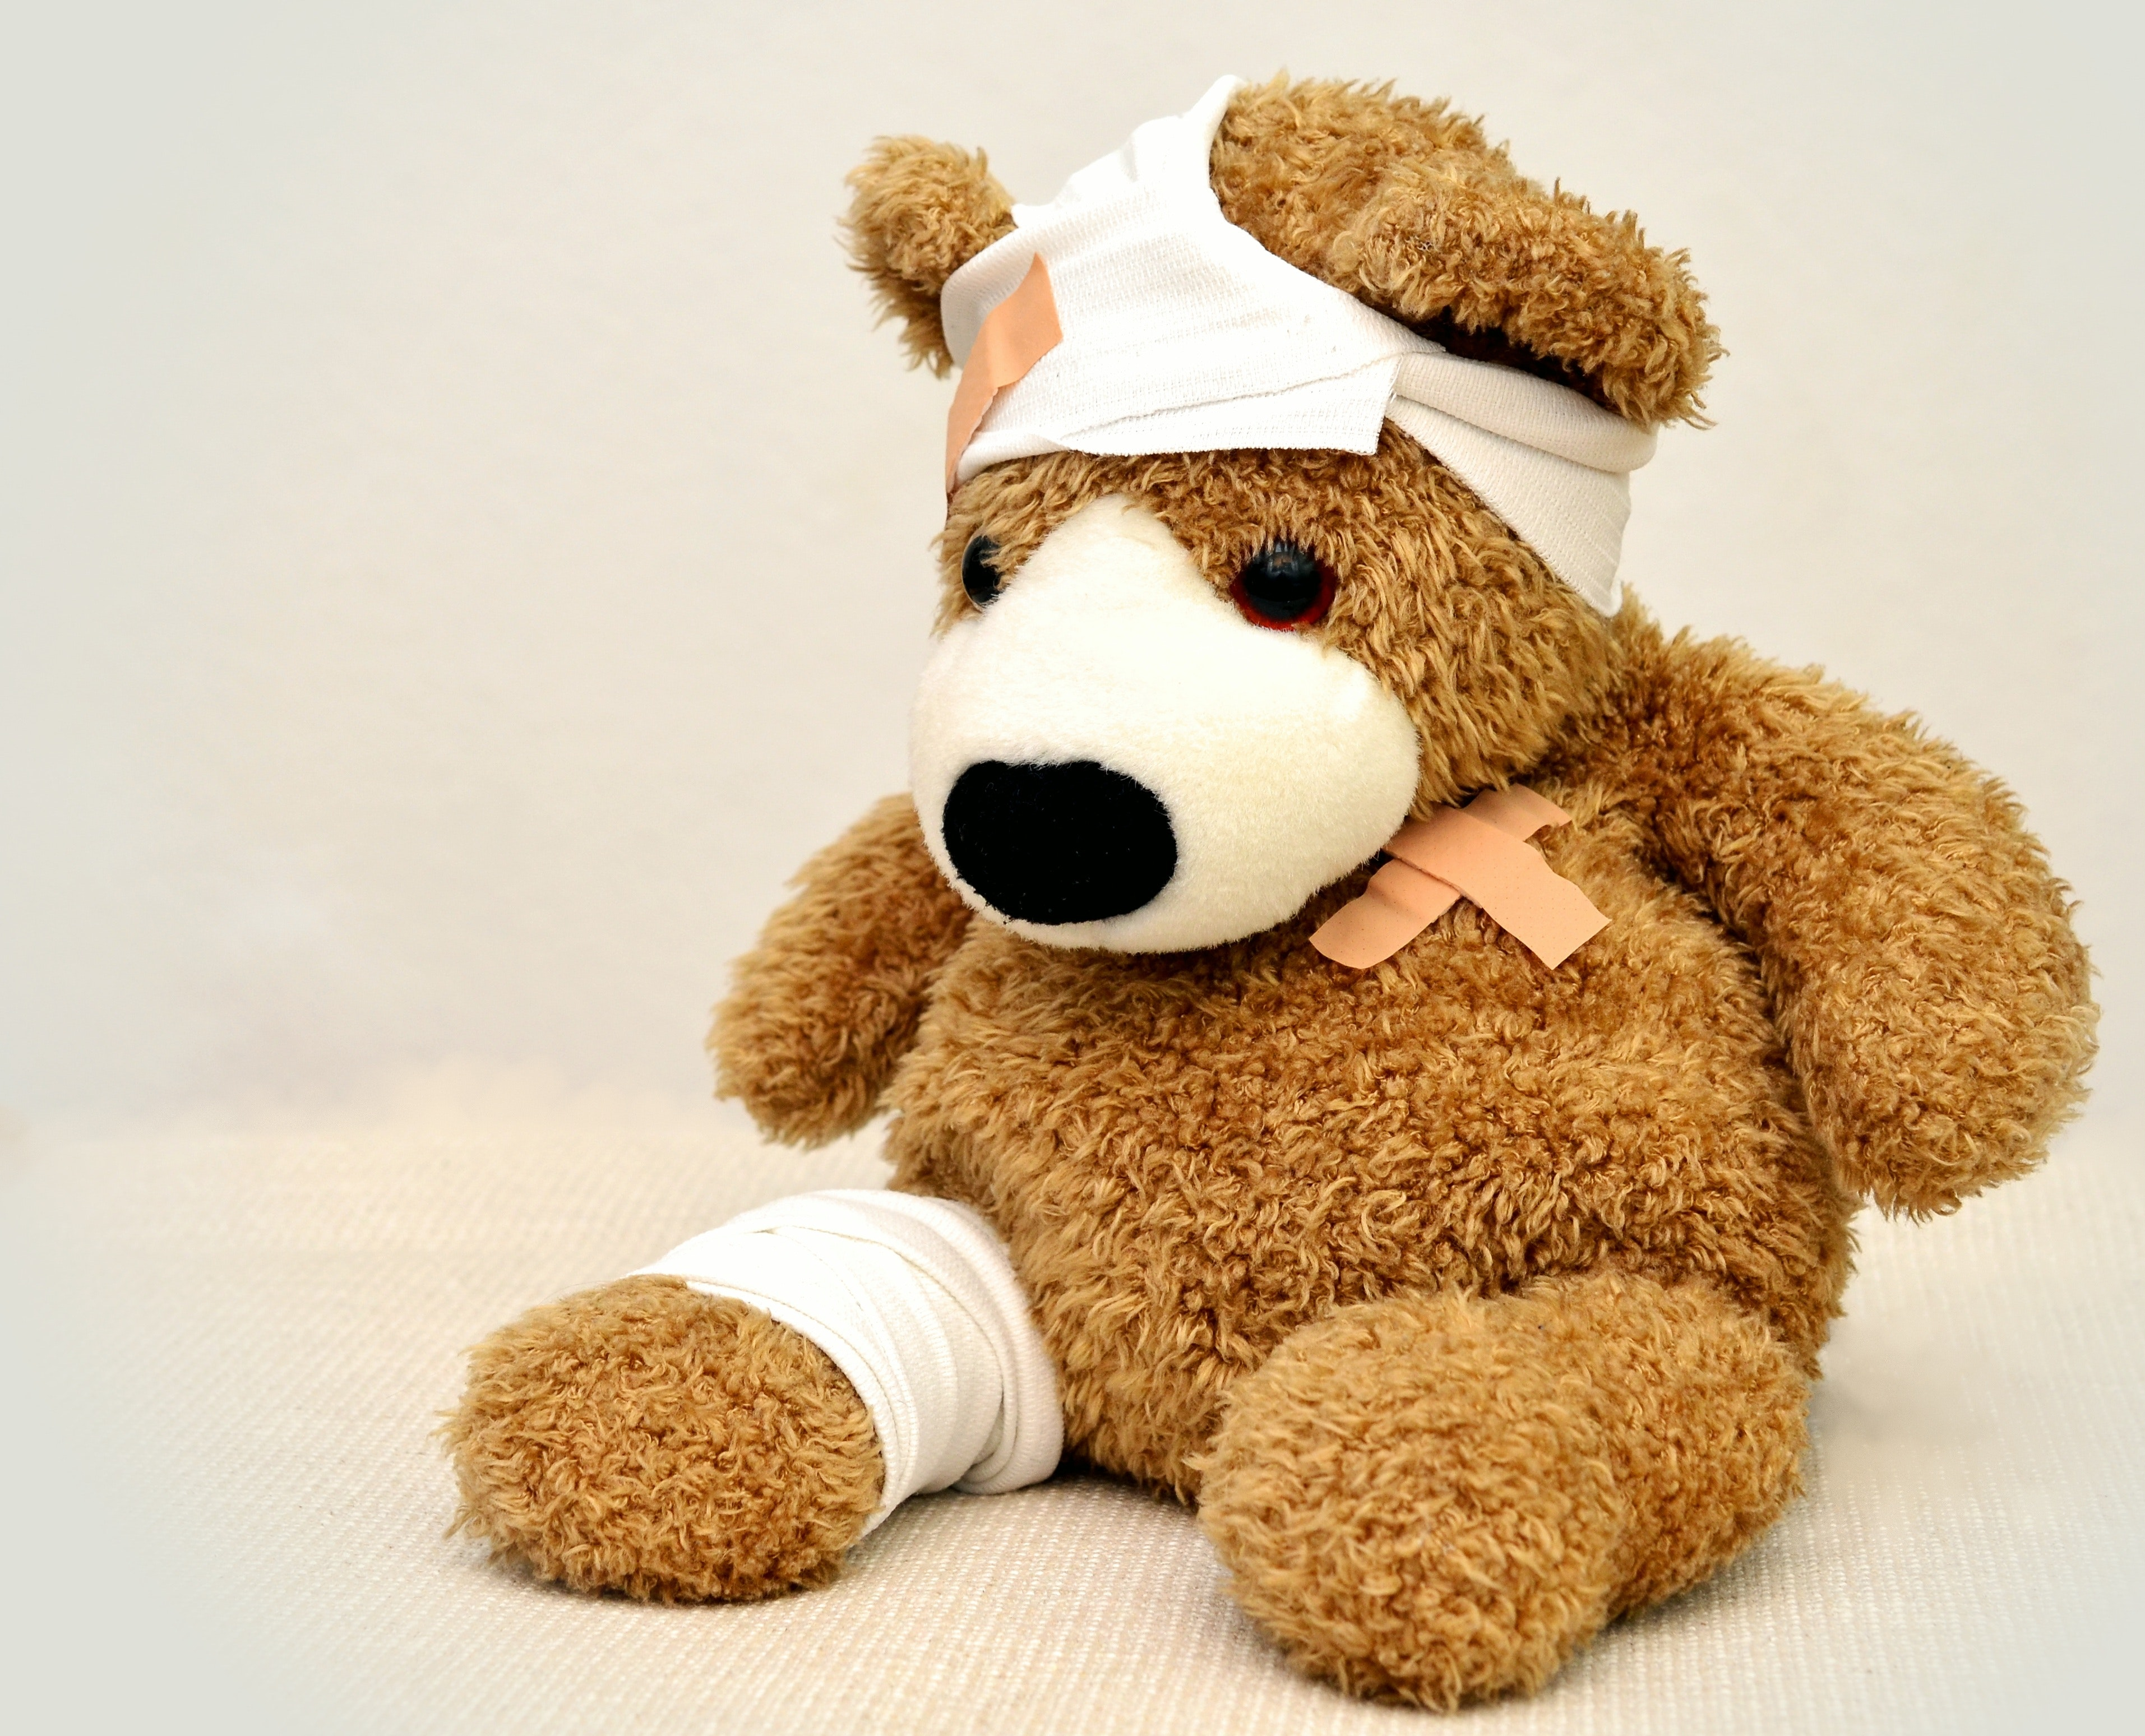 Stock photo of a brown teddy bear with a bandage around its head and another on its leg, and two band-aids crossed over one another on its chest. I mostly chose this image because I didn't want any graphic self-harm pictures and because it is adorable, like me.